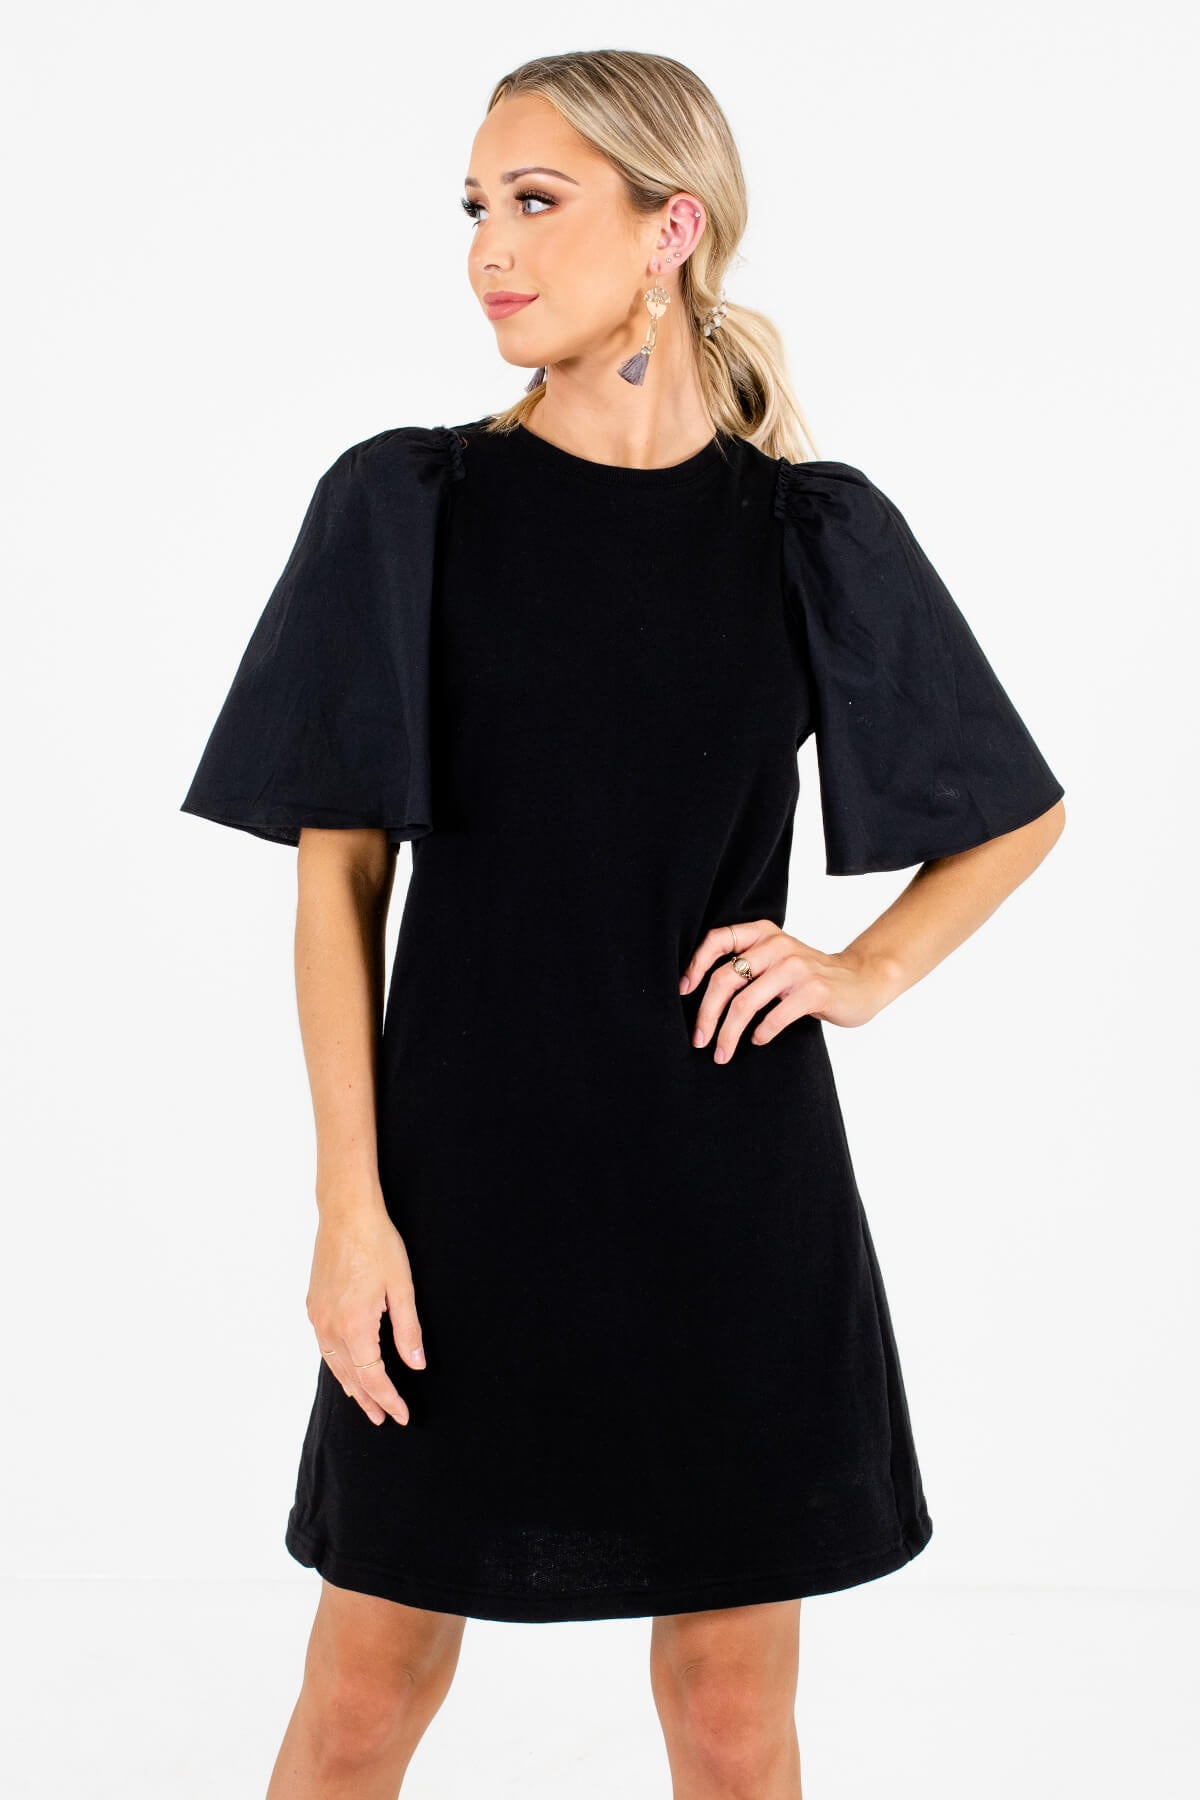 Black Puff Statement Sleeve Boutique Mini Dress for Women